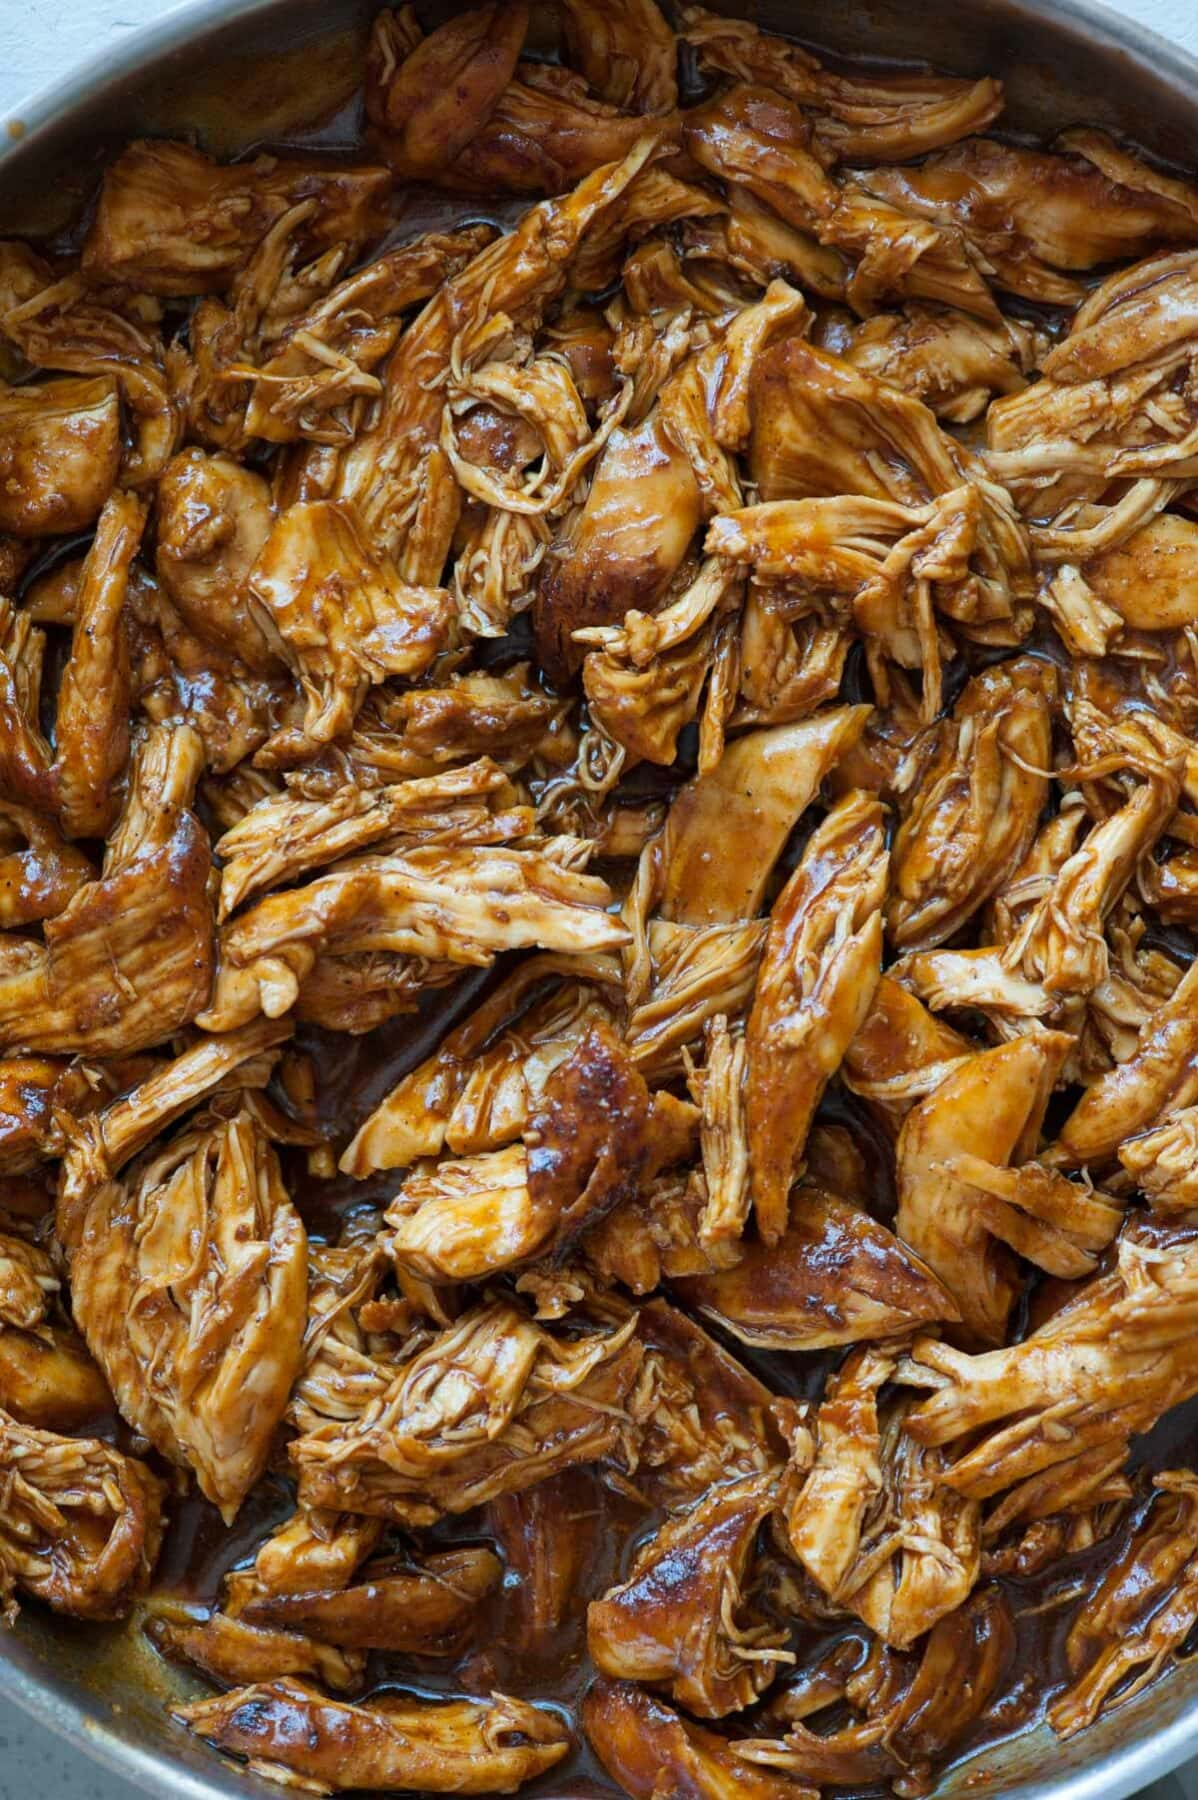 A close up photo of bbq pulled chicken in a pan.